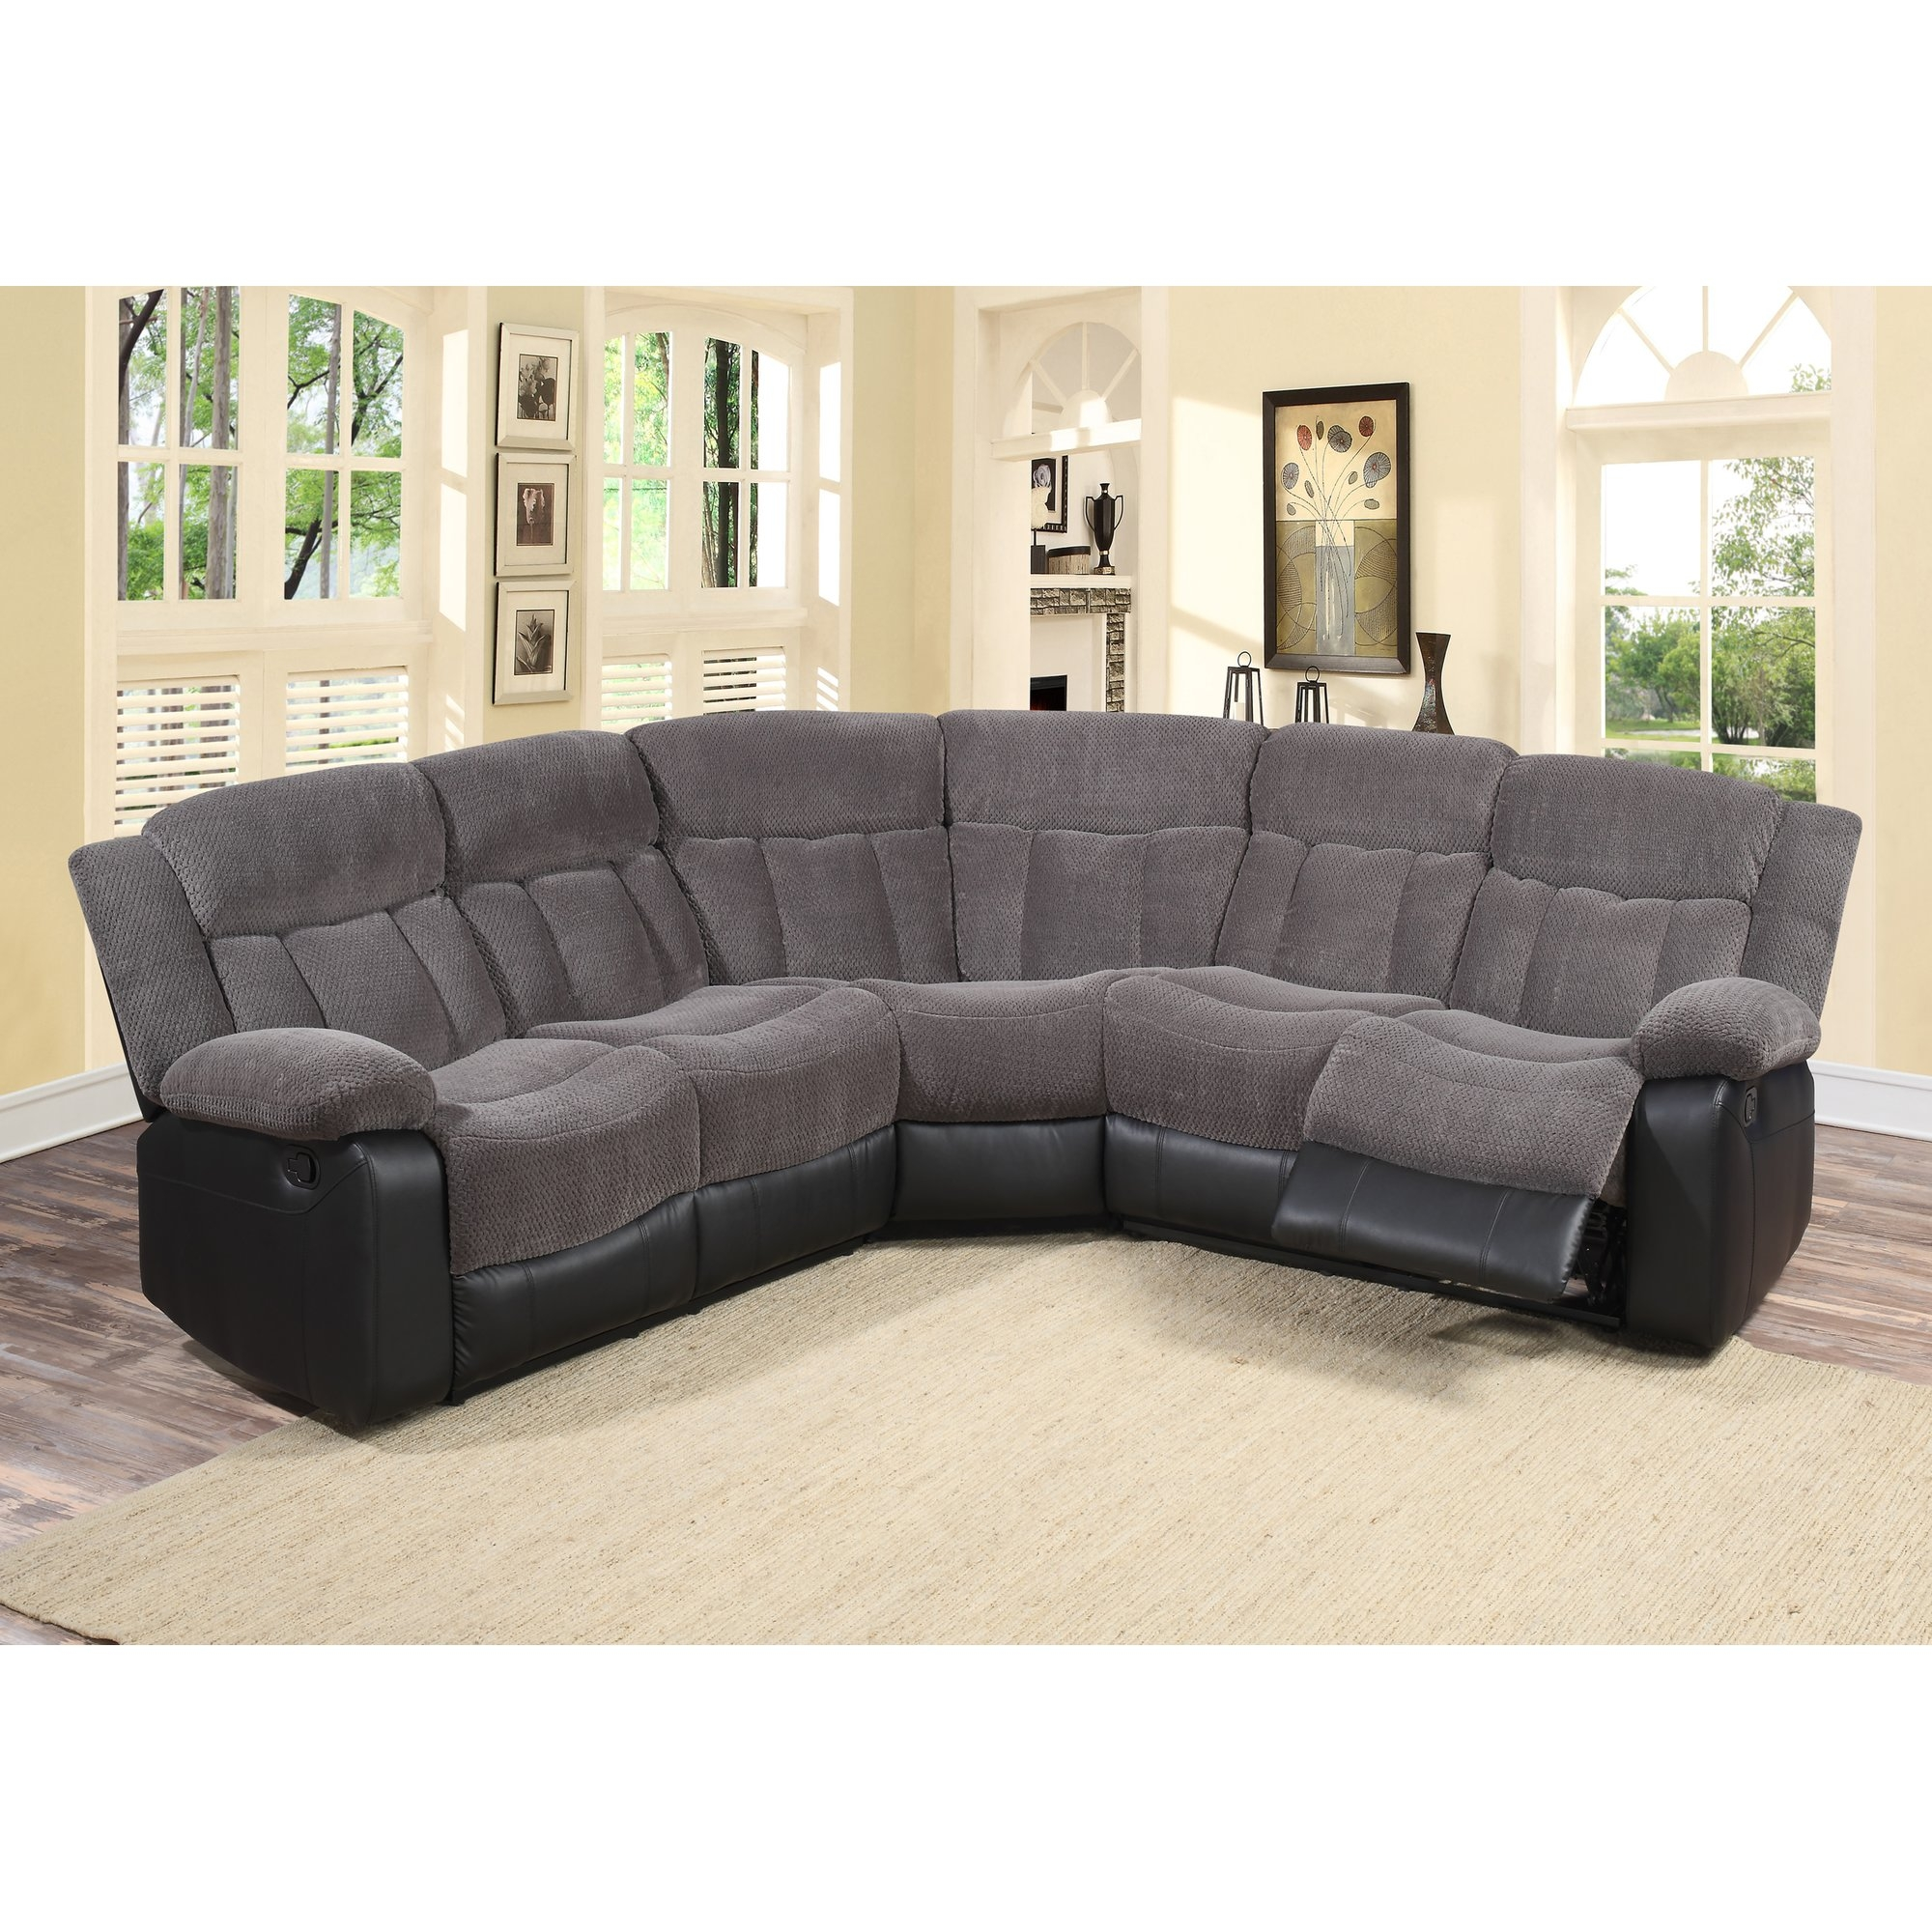 Black Sectional Sofas Youll Love Wayfair Pertaining To 6 Piece Modular Sectional Sofa (Image 3 of 15)